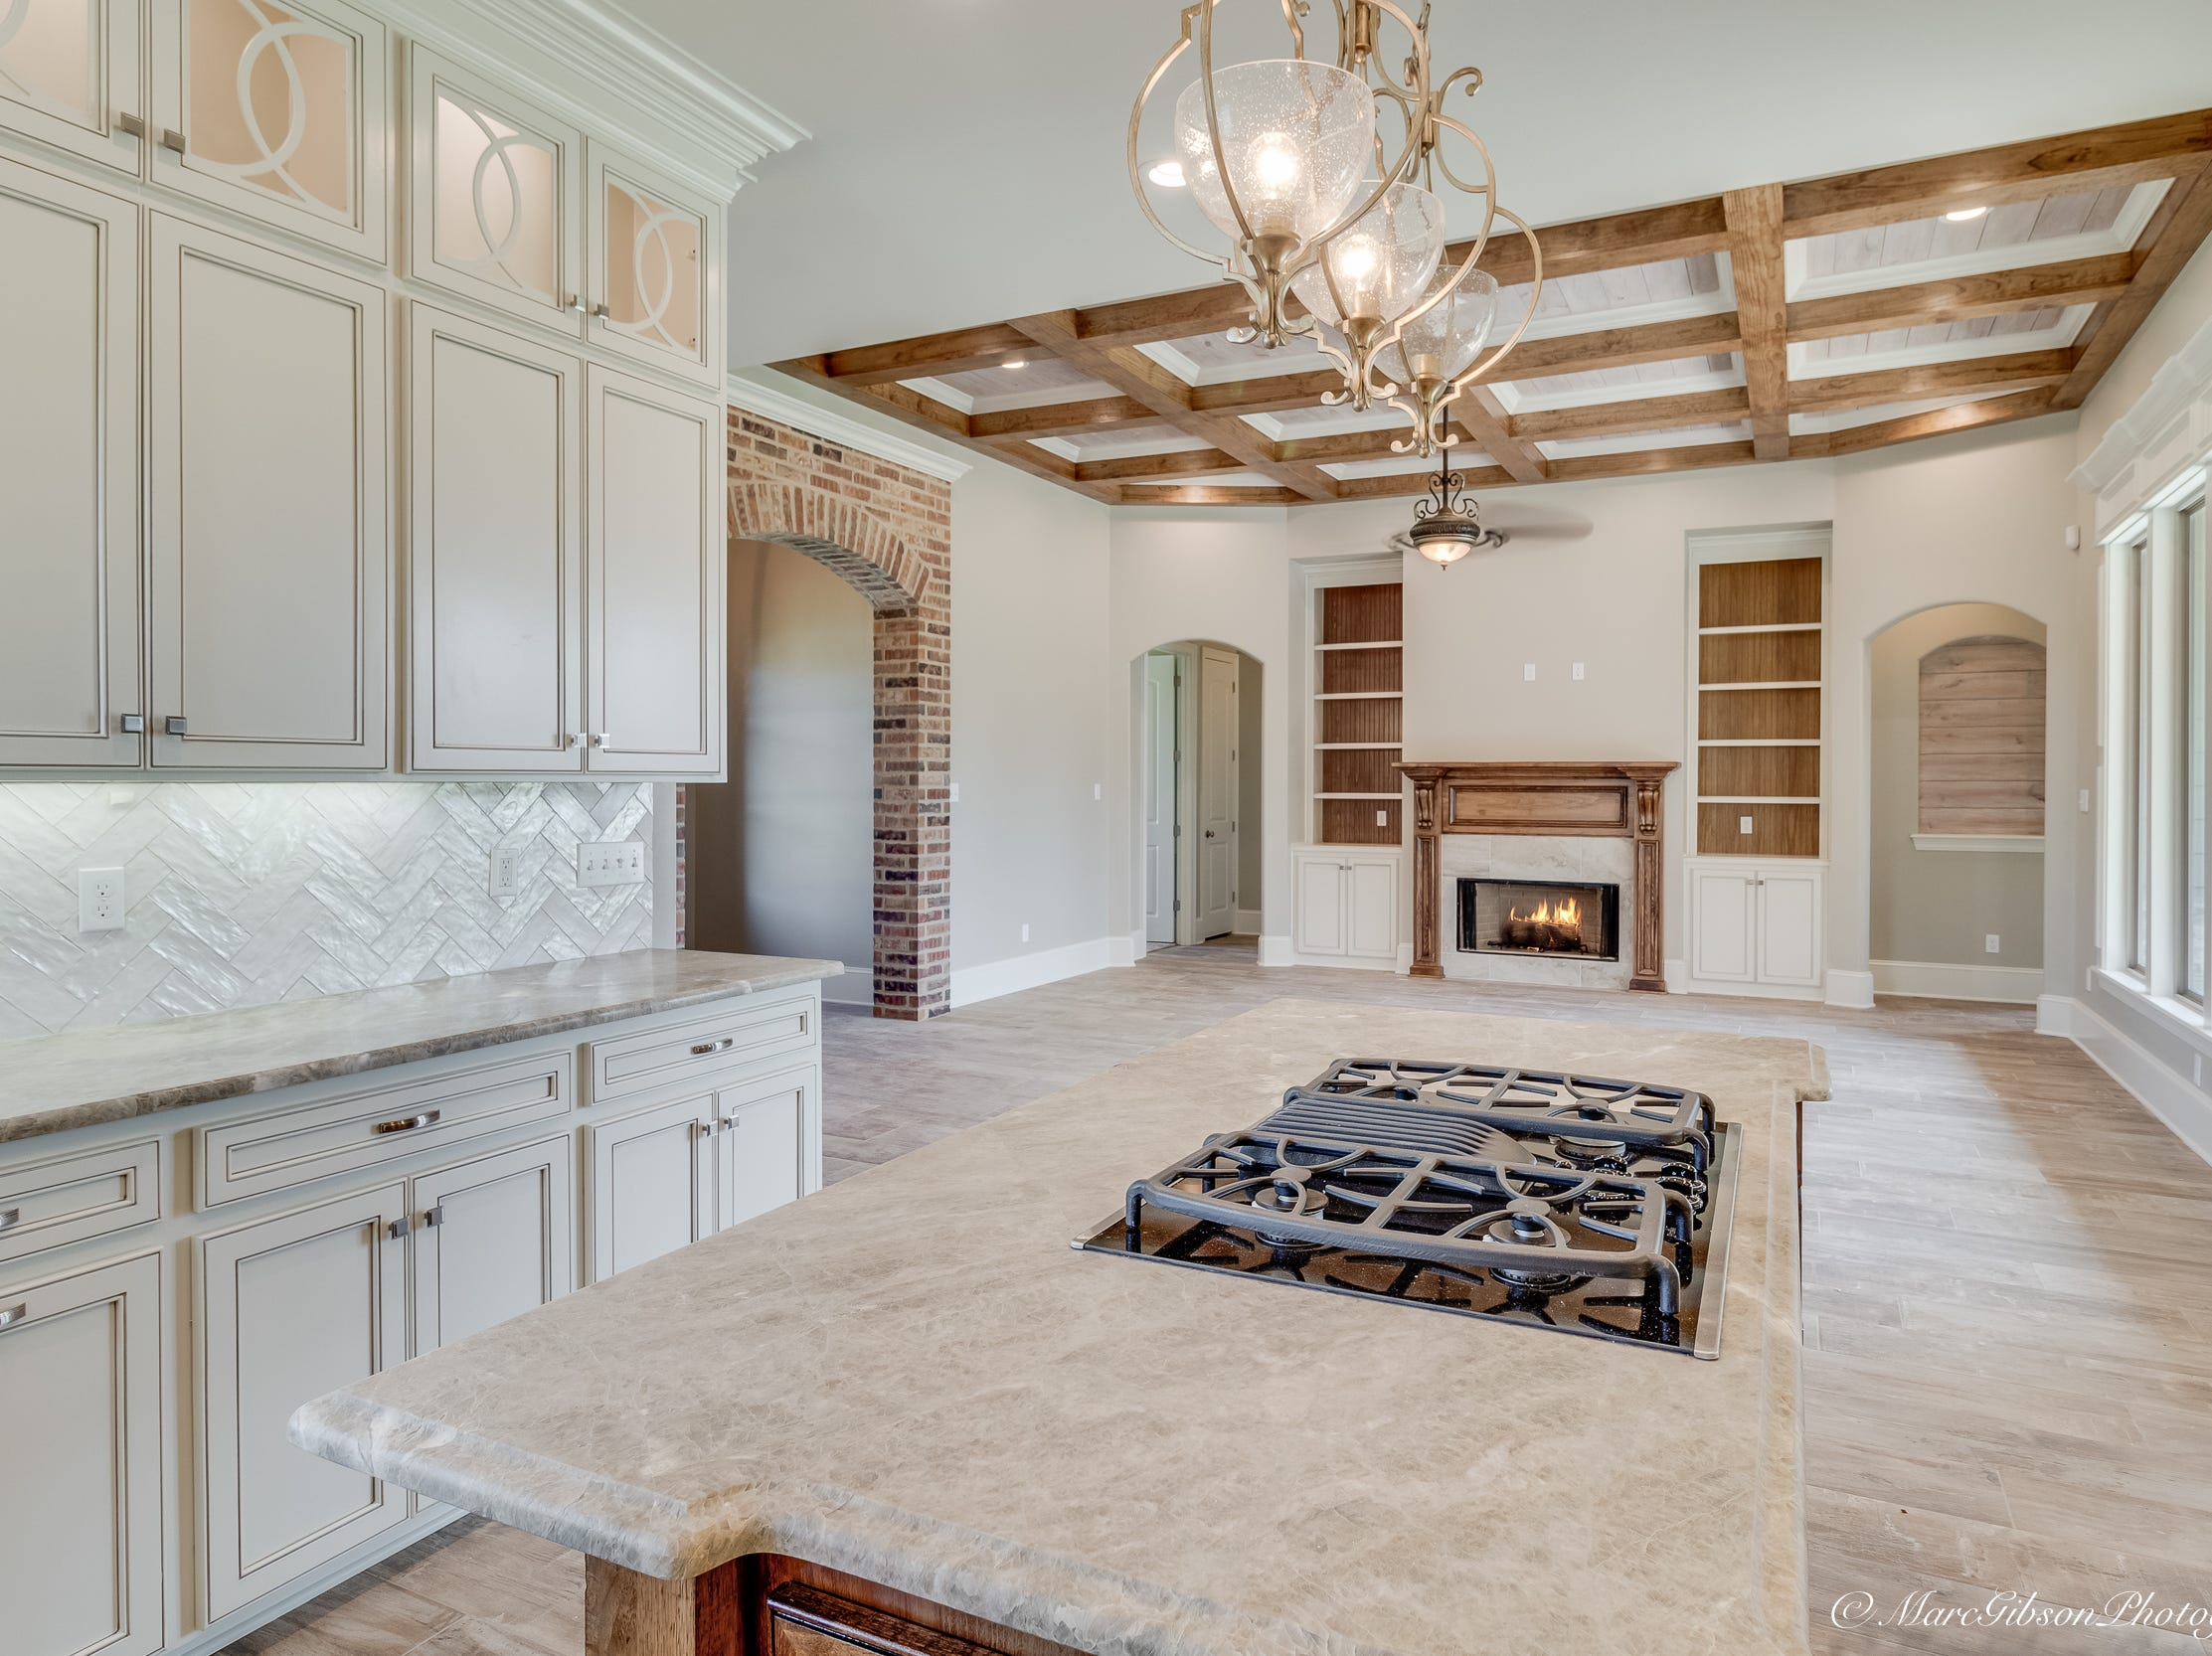 226 Piccadilly Circle,   Bossier City  Price: $468,500  Details: 4 bedrooms, 4 bathrooms, 2,774 square feet  Special features: New construction, Parade of Homes stop, cook's kitchen.   Contact: Opha and Dianne, 752-2700